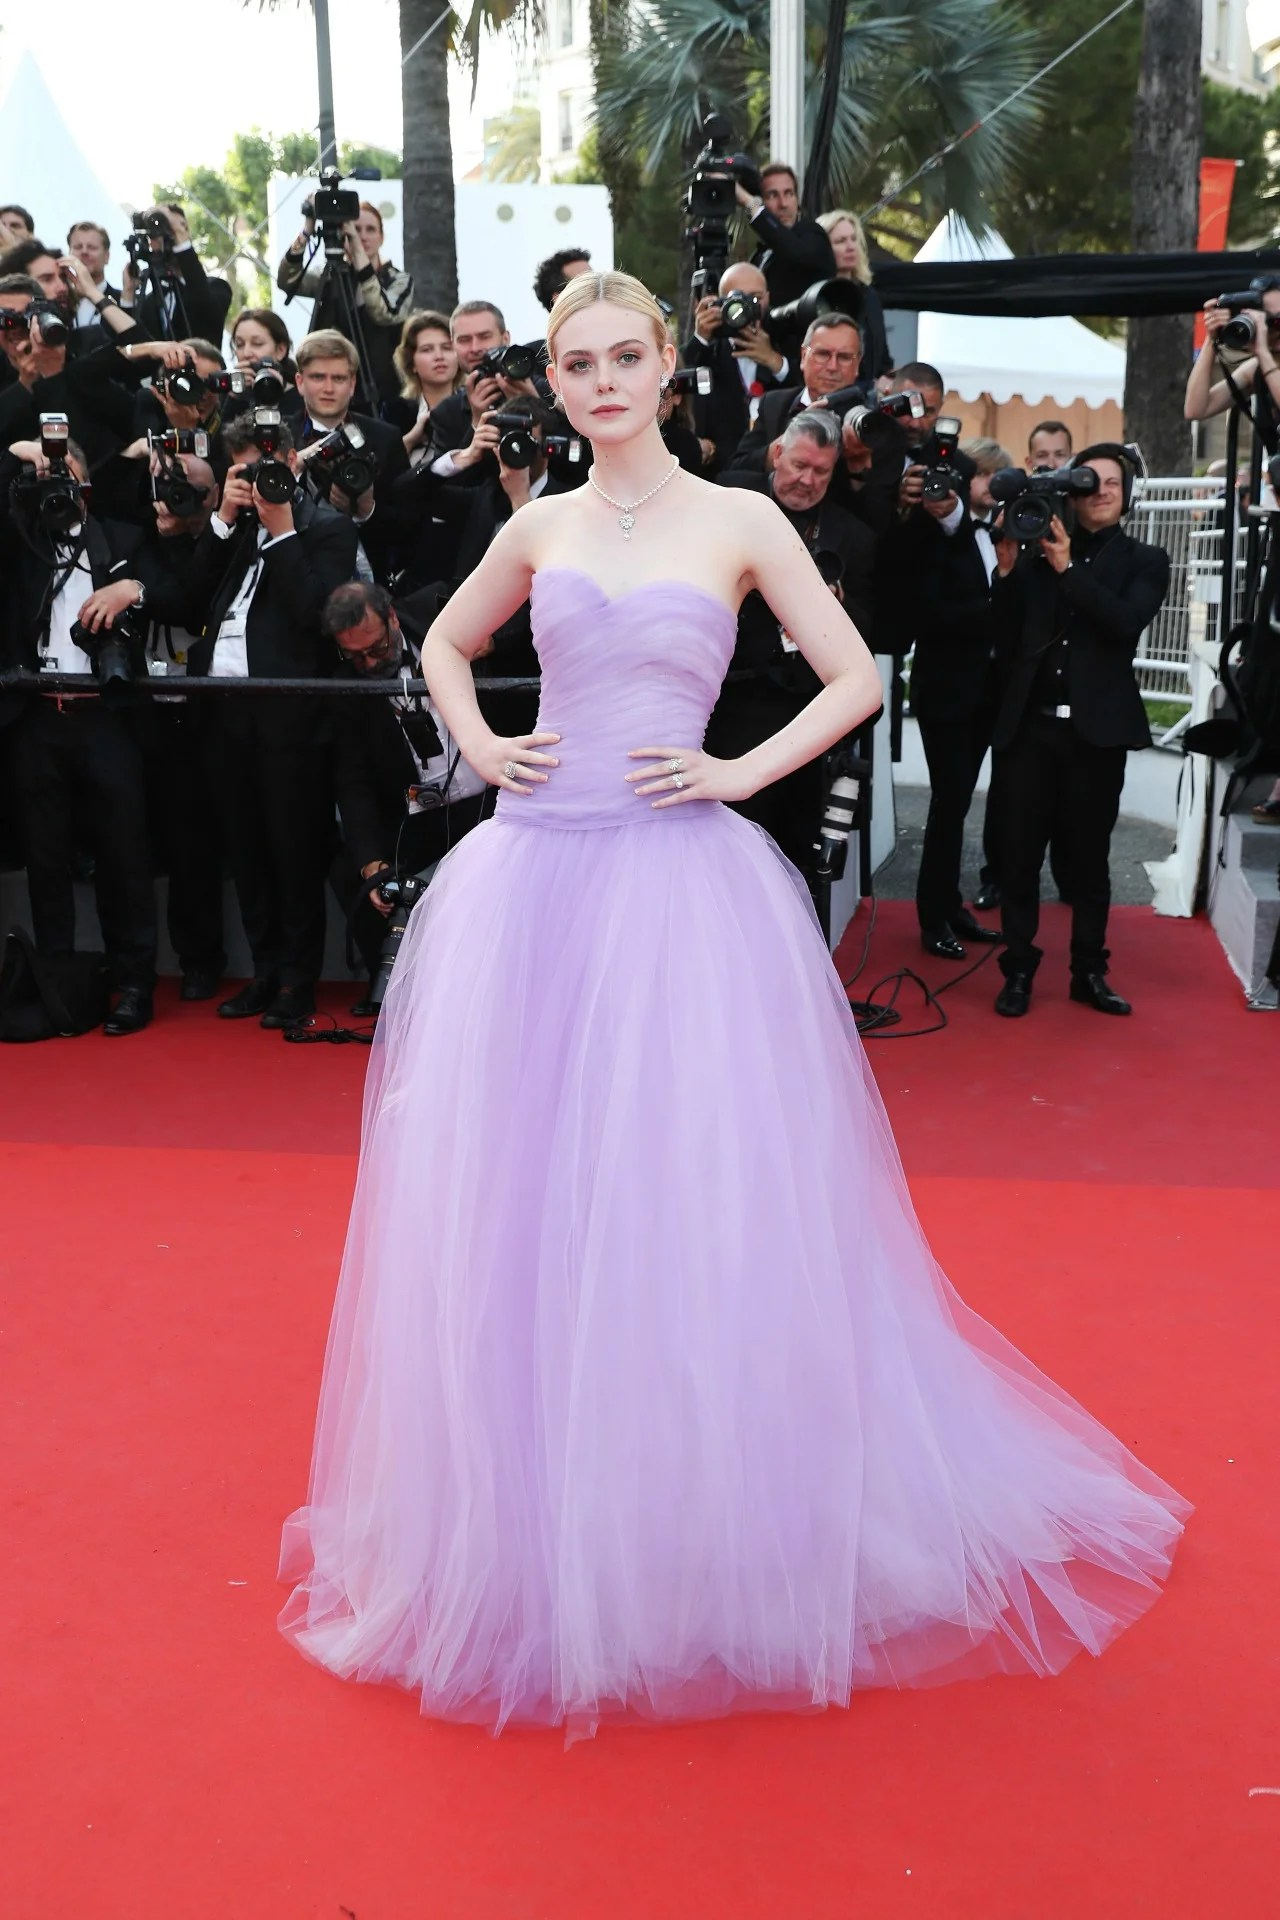 Nicole Kidman Elle Fanning  Kirsten Dunst Stun on The